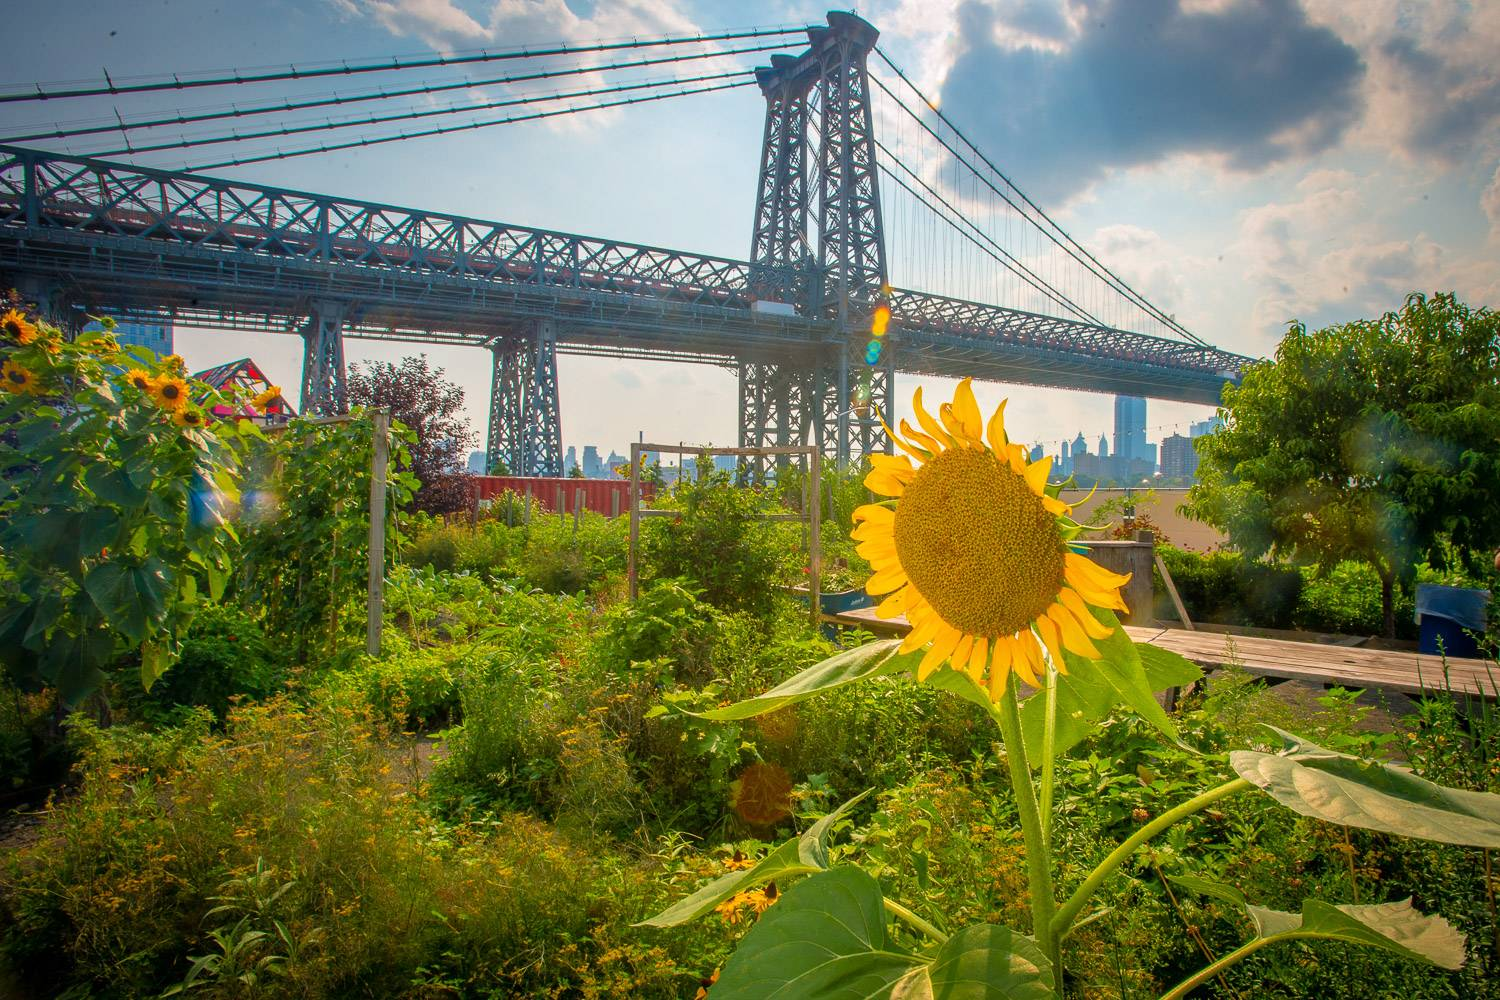 Image of a sunflower in an urban garden with other plants and vegetables, nyc skyline and bridge in the background